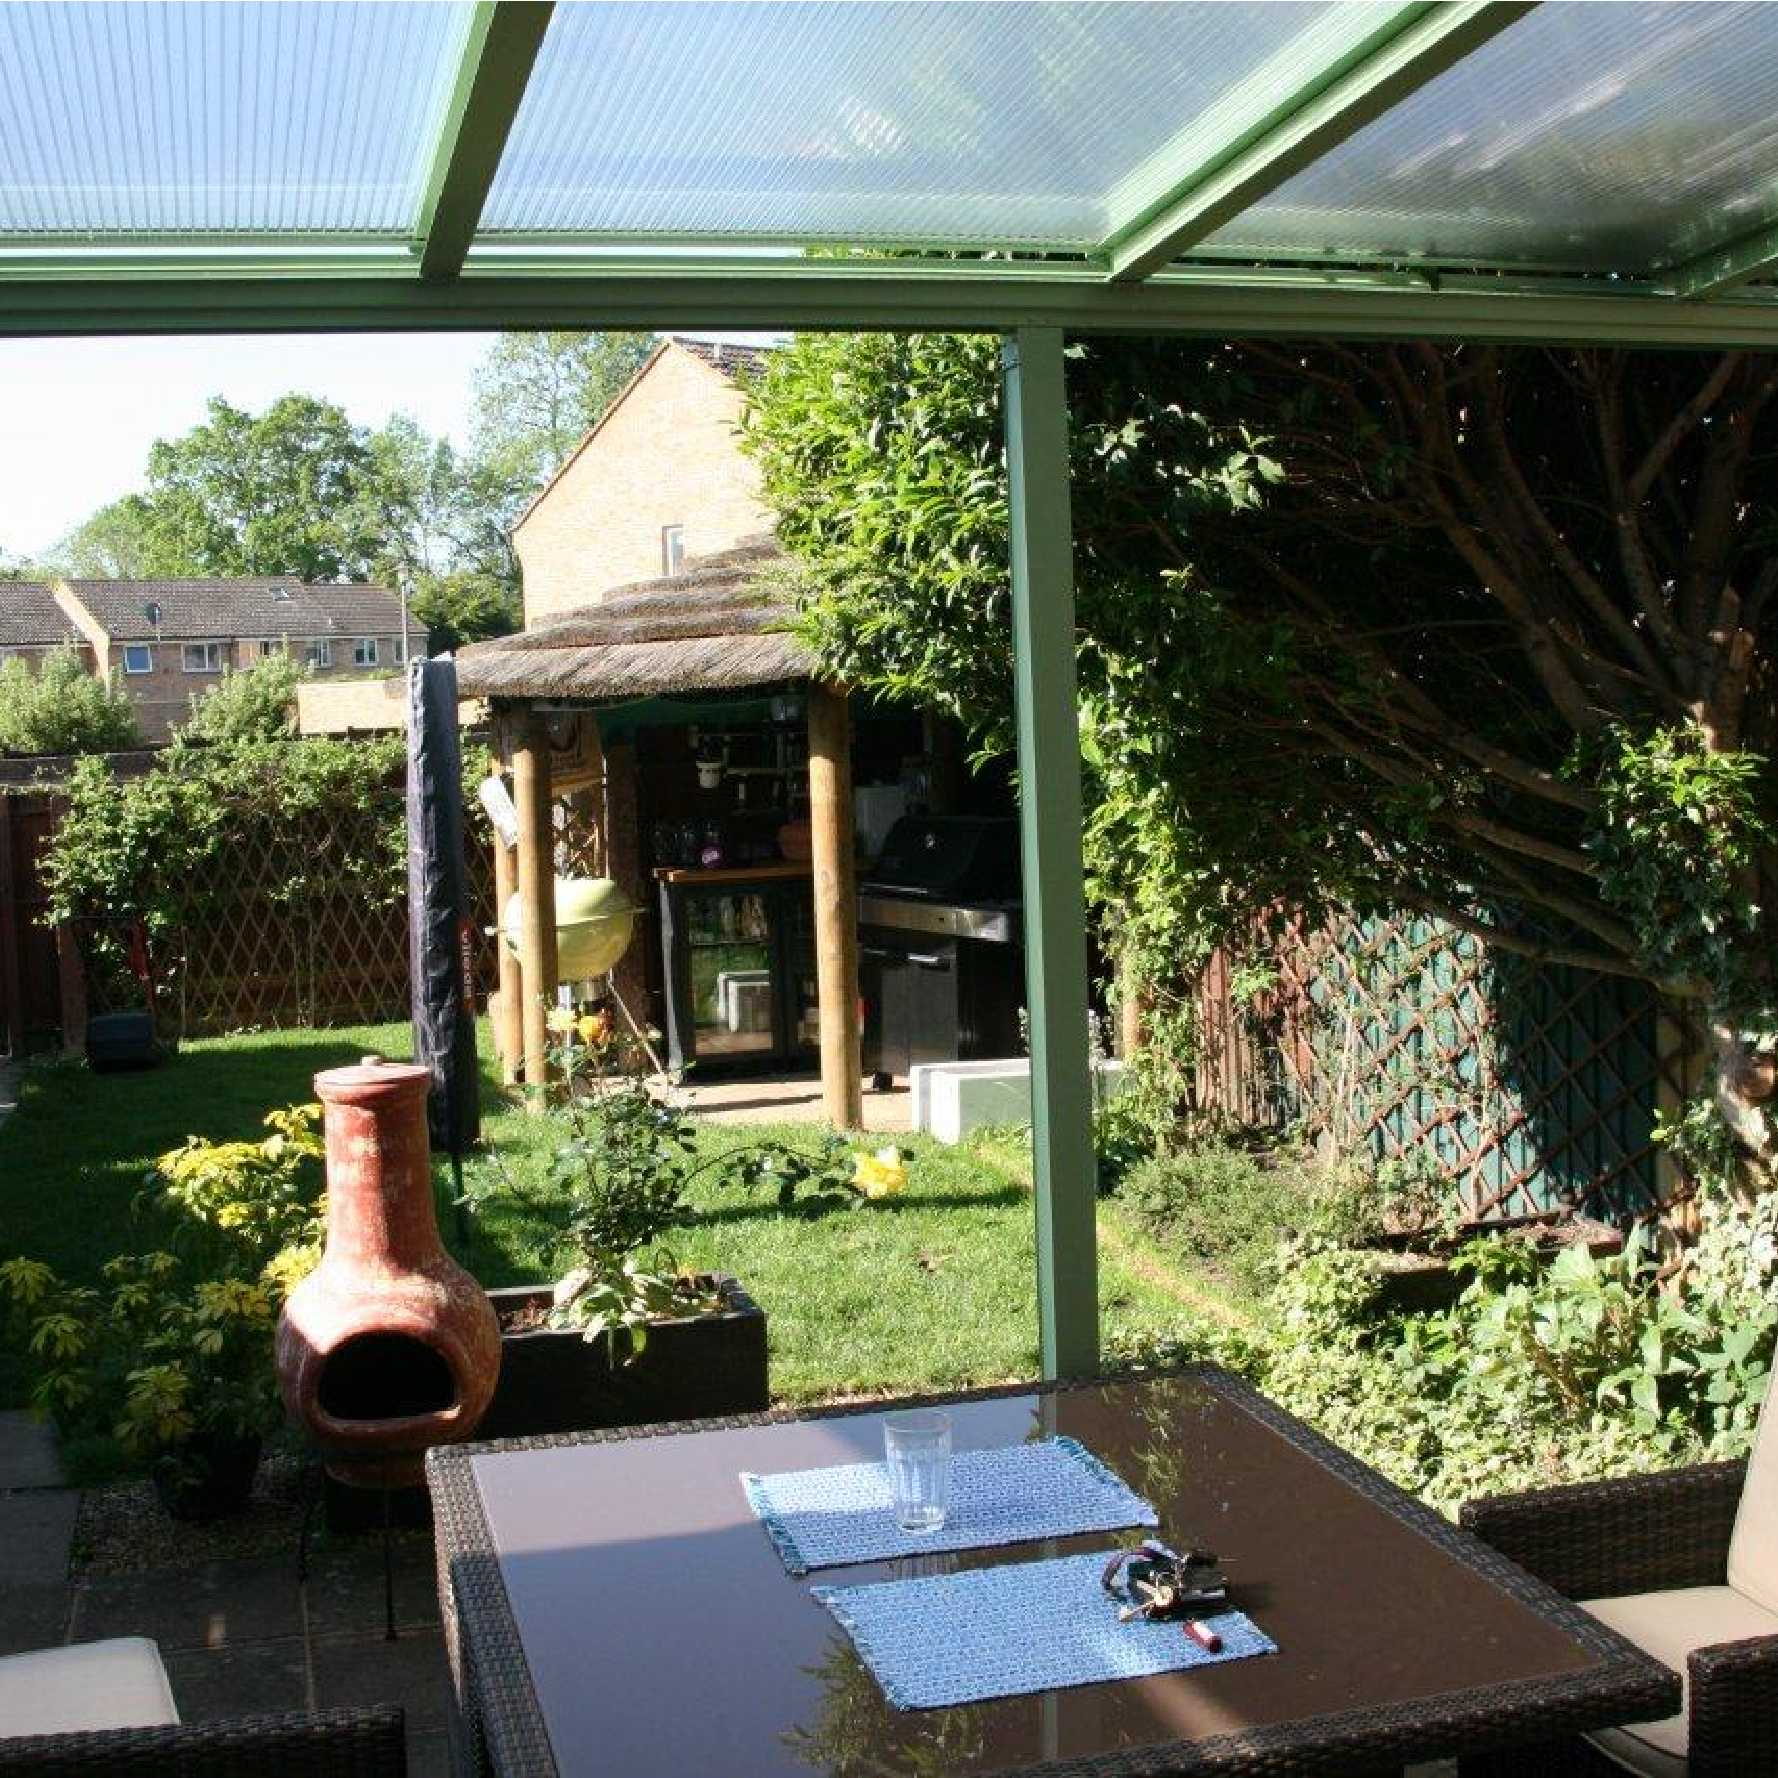 Affordable Omega Smart Lean-To Canopy with 16mm Polycarbonate Glazing - 5.2m (W) x 1.5m (P), (3) Supporting Posts